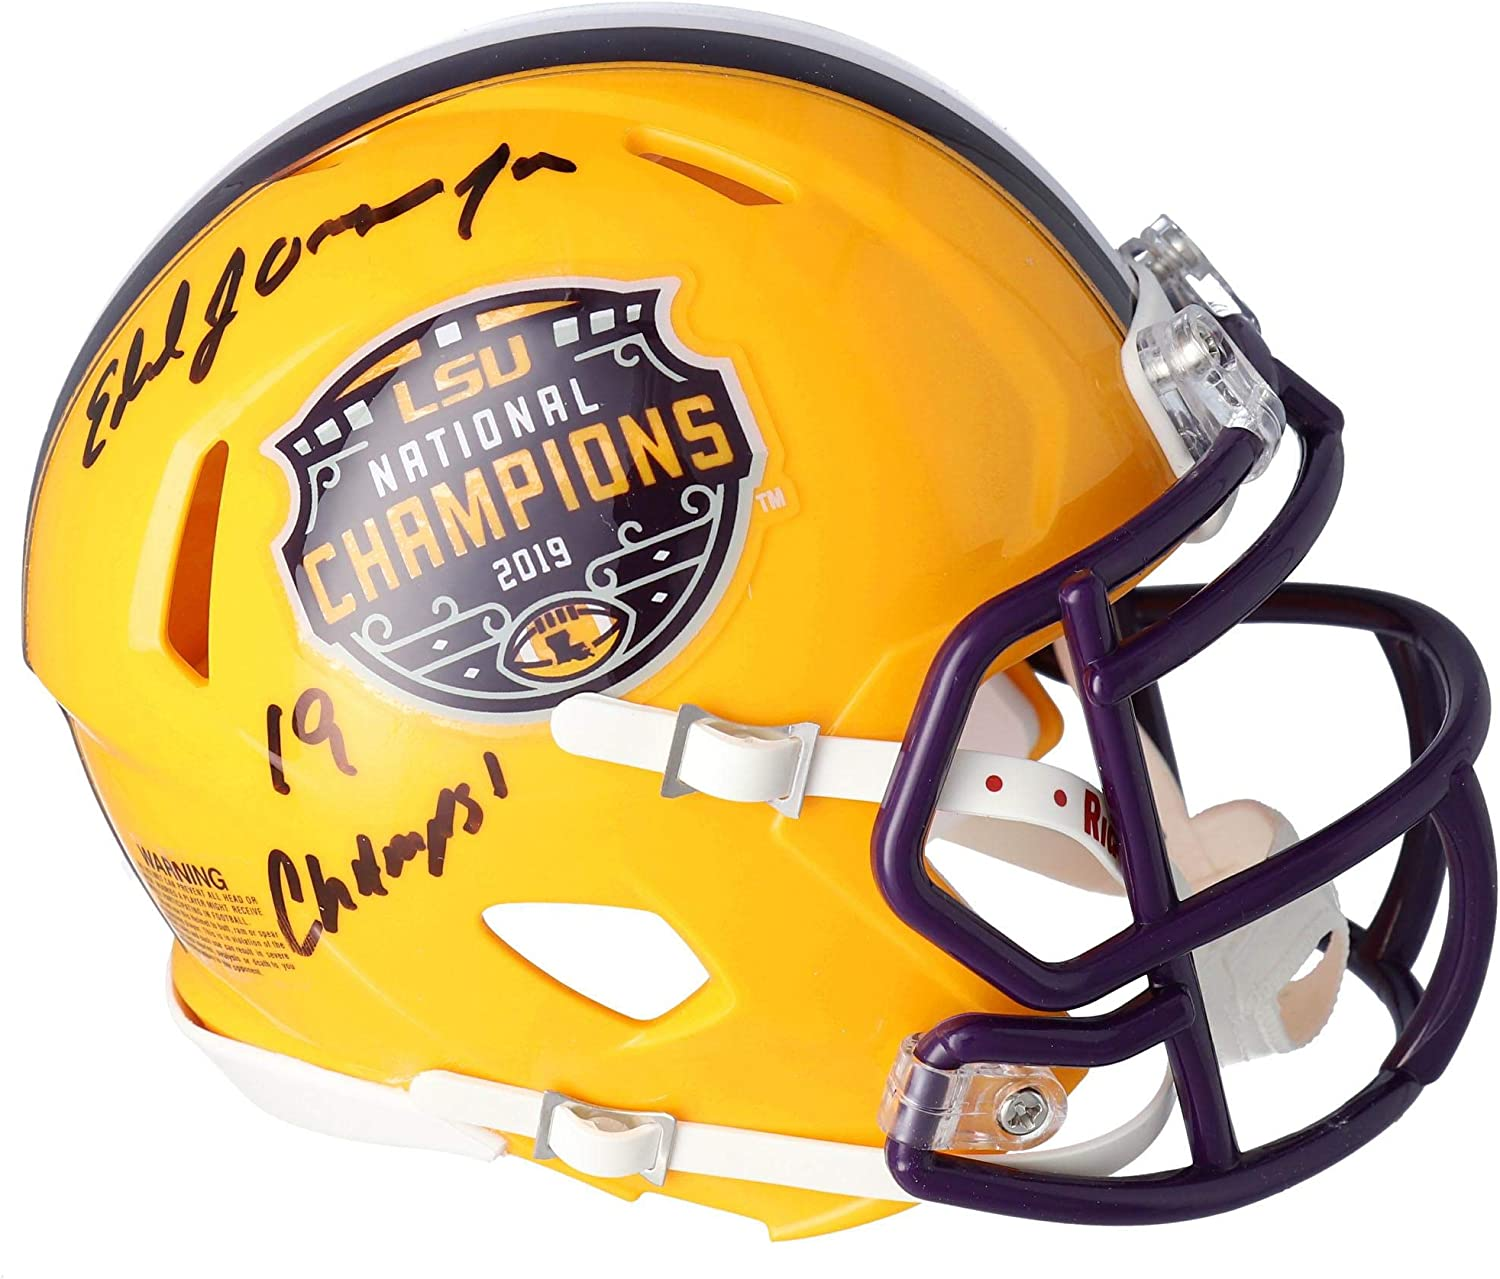 Ed Orgeron LSU Ranking TOP16 Max 79% OFF Tigers Autographed Football 2019 College Playoff